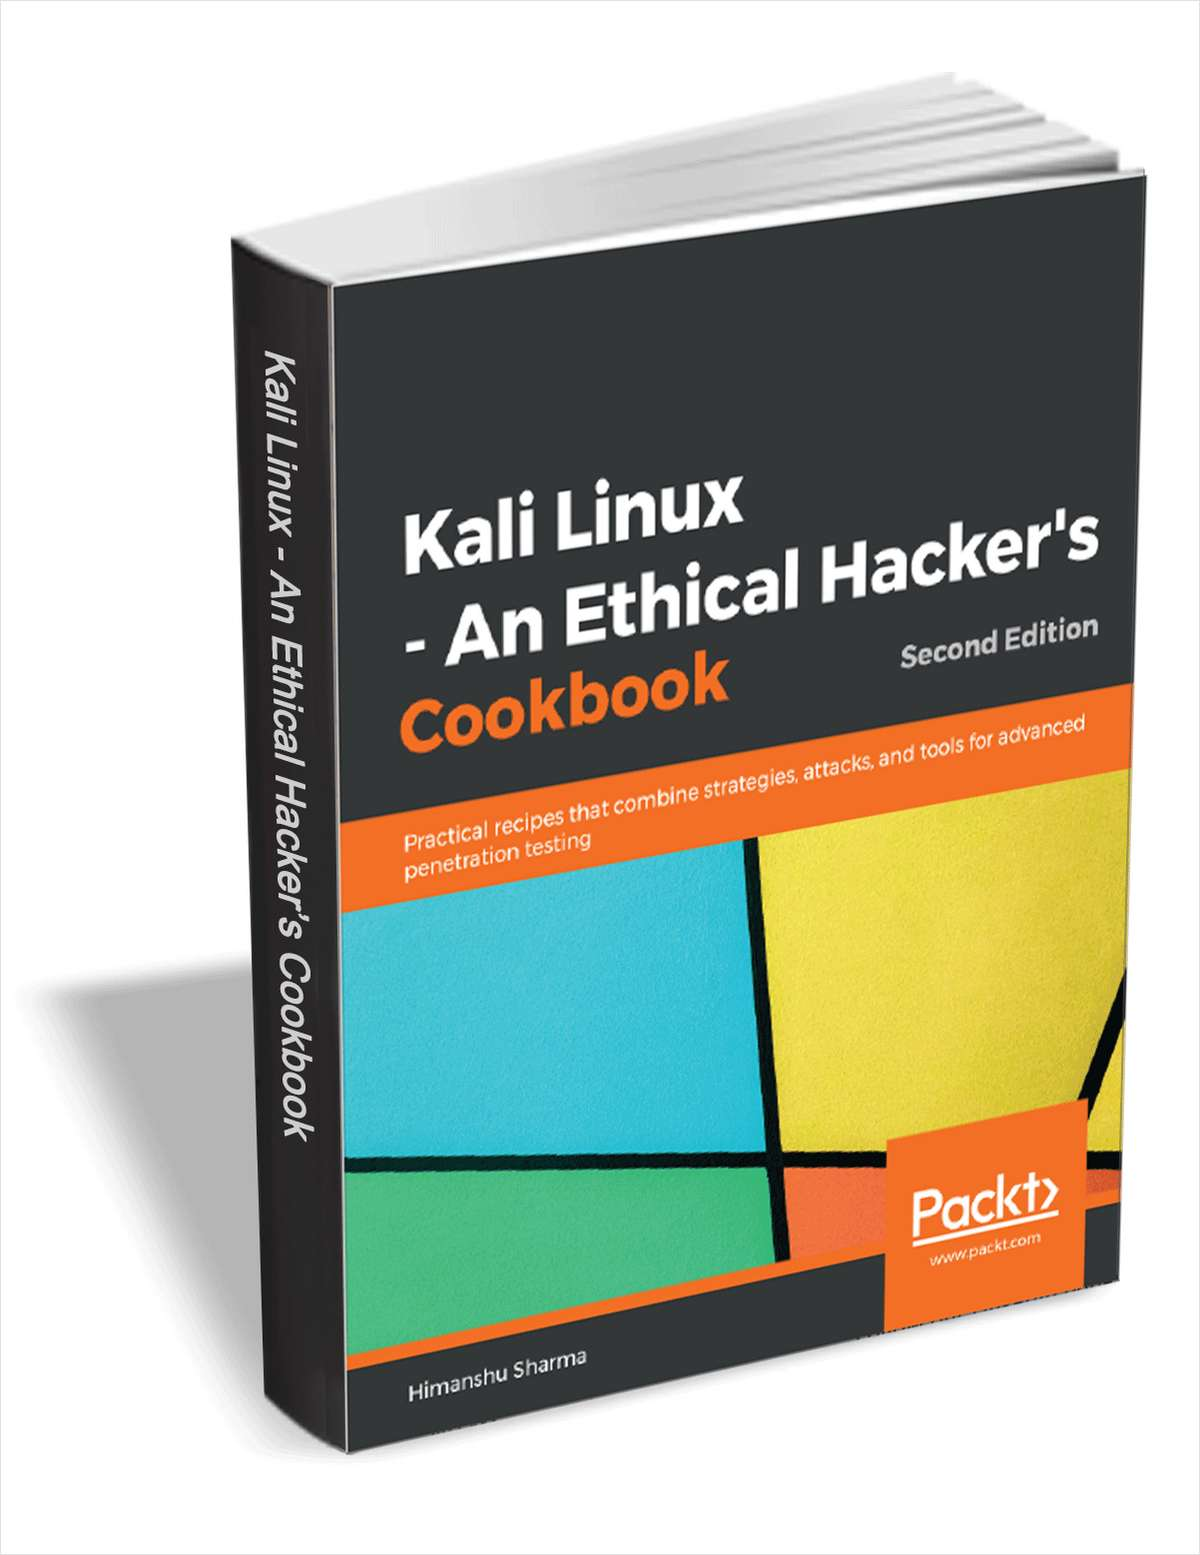 Kali Linux - An Ethical Hacker's Cookbook, 2nd Edition ($44.99 Value) FREE for a Limited Time